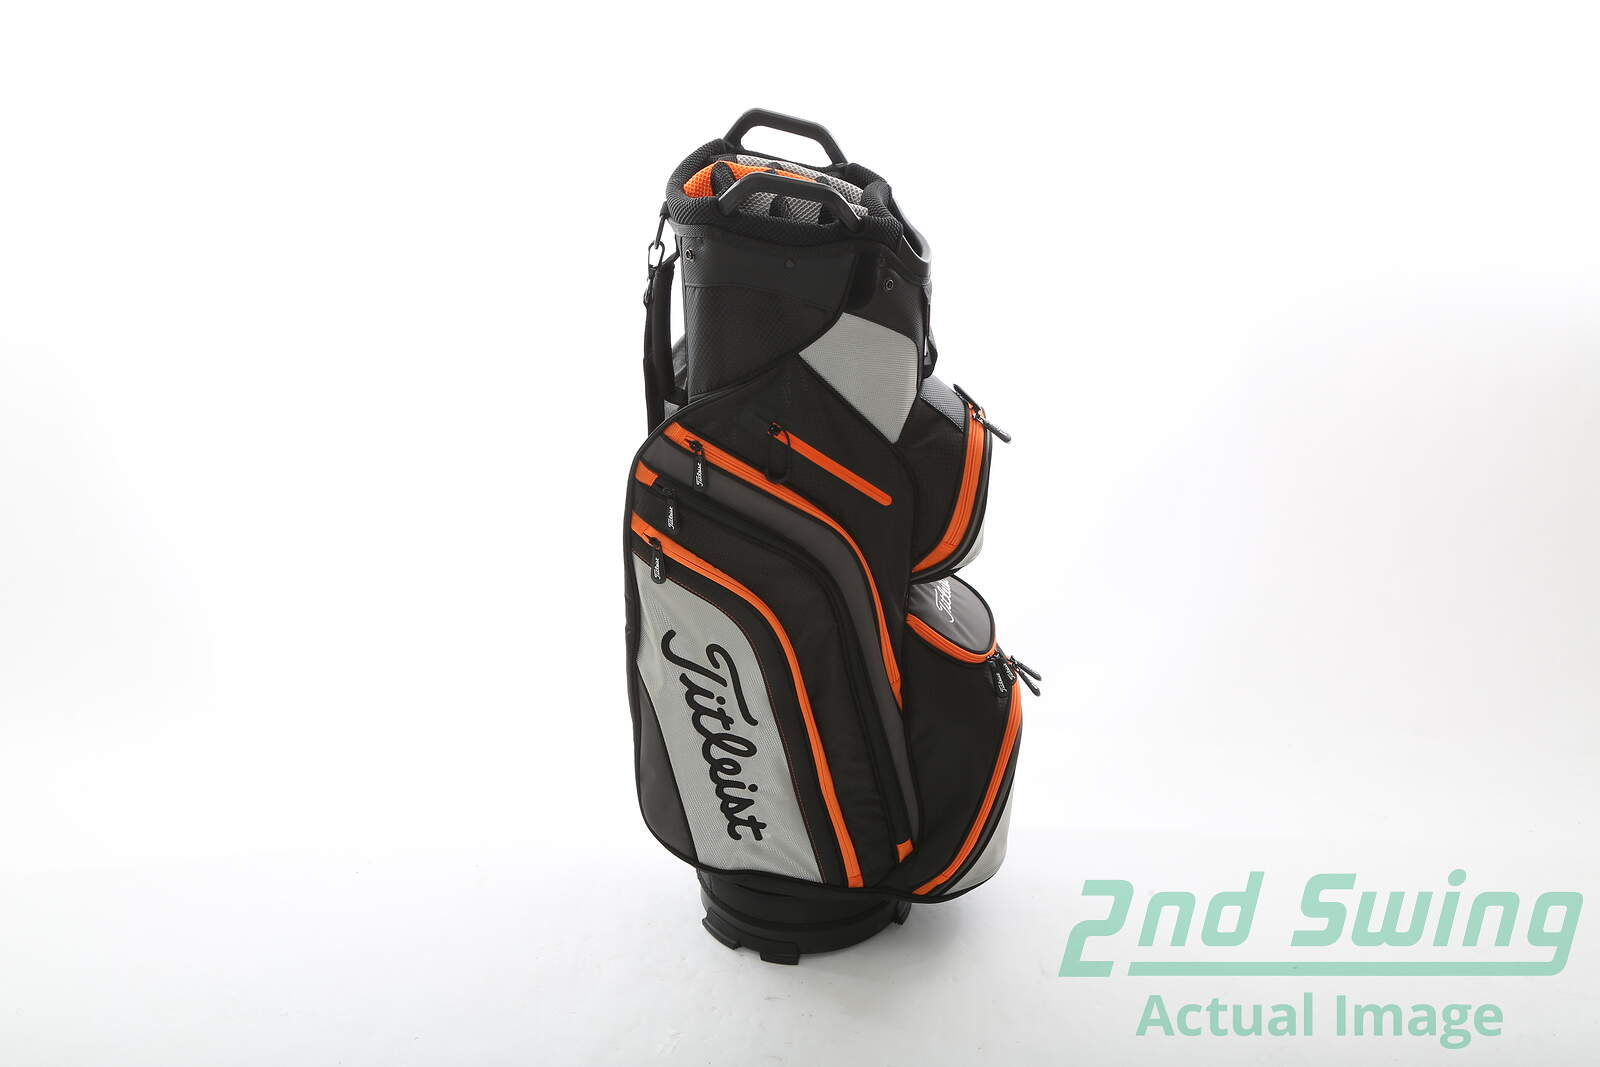 New Leist Deluxe Black Grey Orange Cart Bag 14 Way Shirt 9 5 In Mouth 2nd Swing Golf